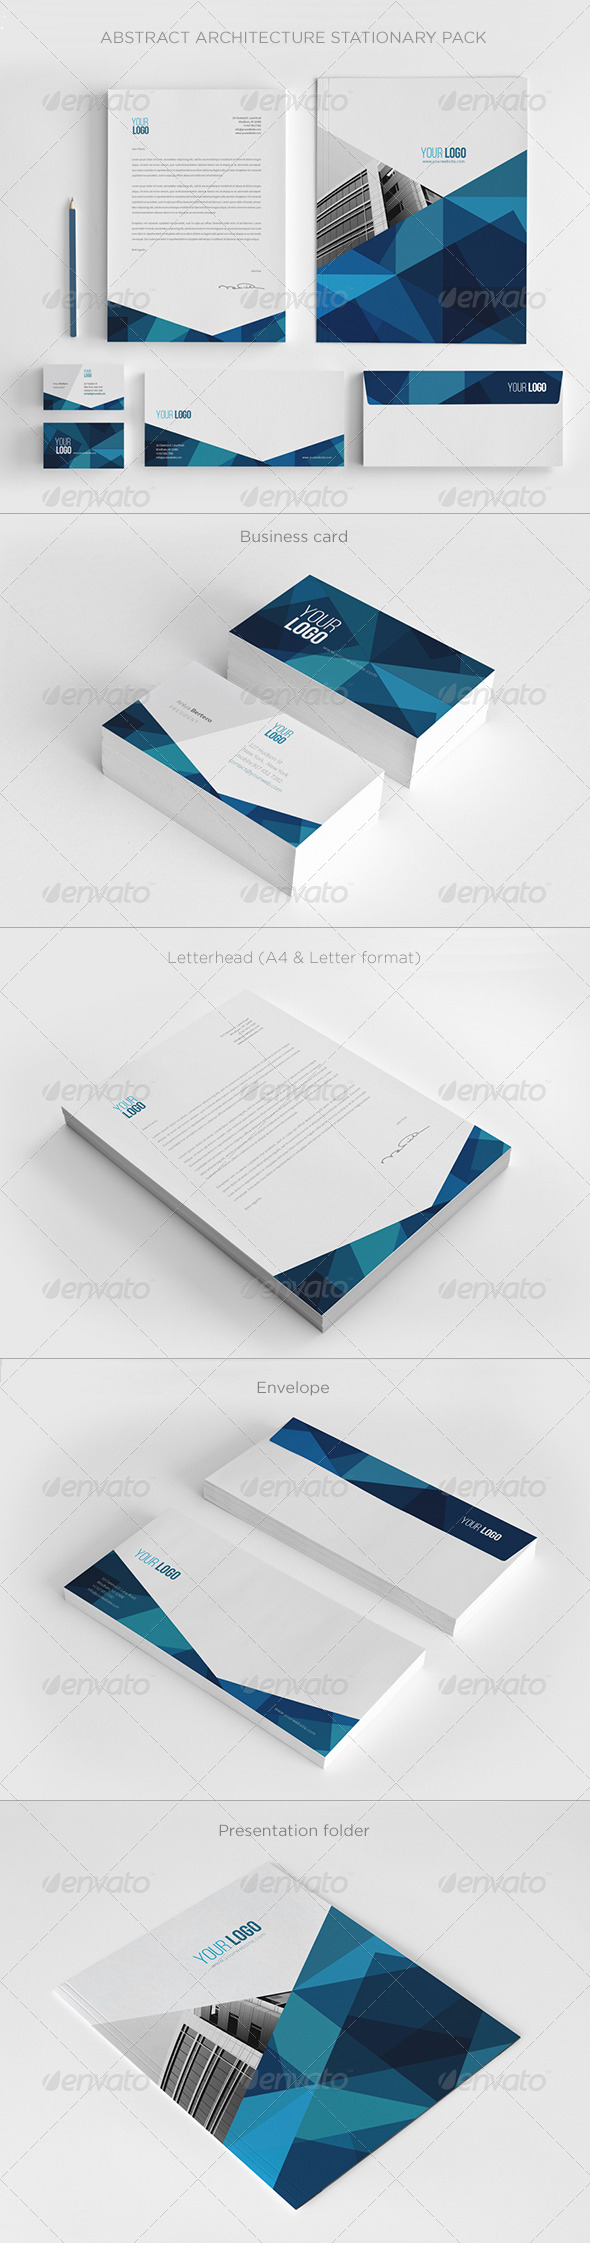 Abstract Architecture Stationery Pack - Stationery Print Templates